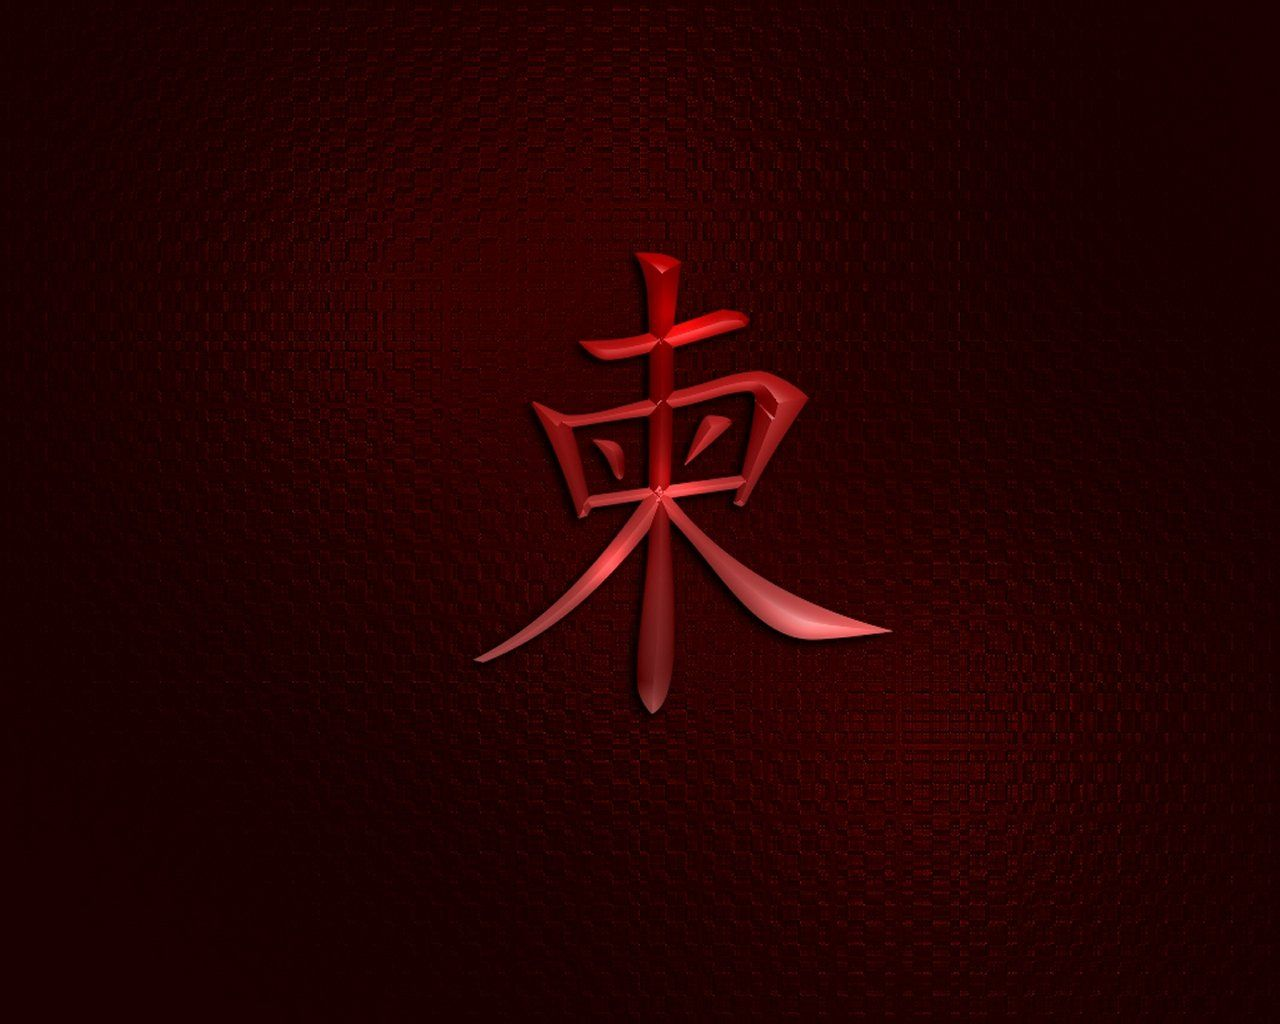 1280x1024 Chinese Symbol Wallpaper - (49+) Group Wallpapers